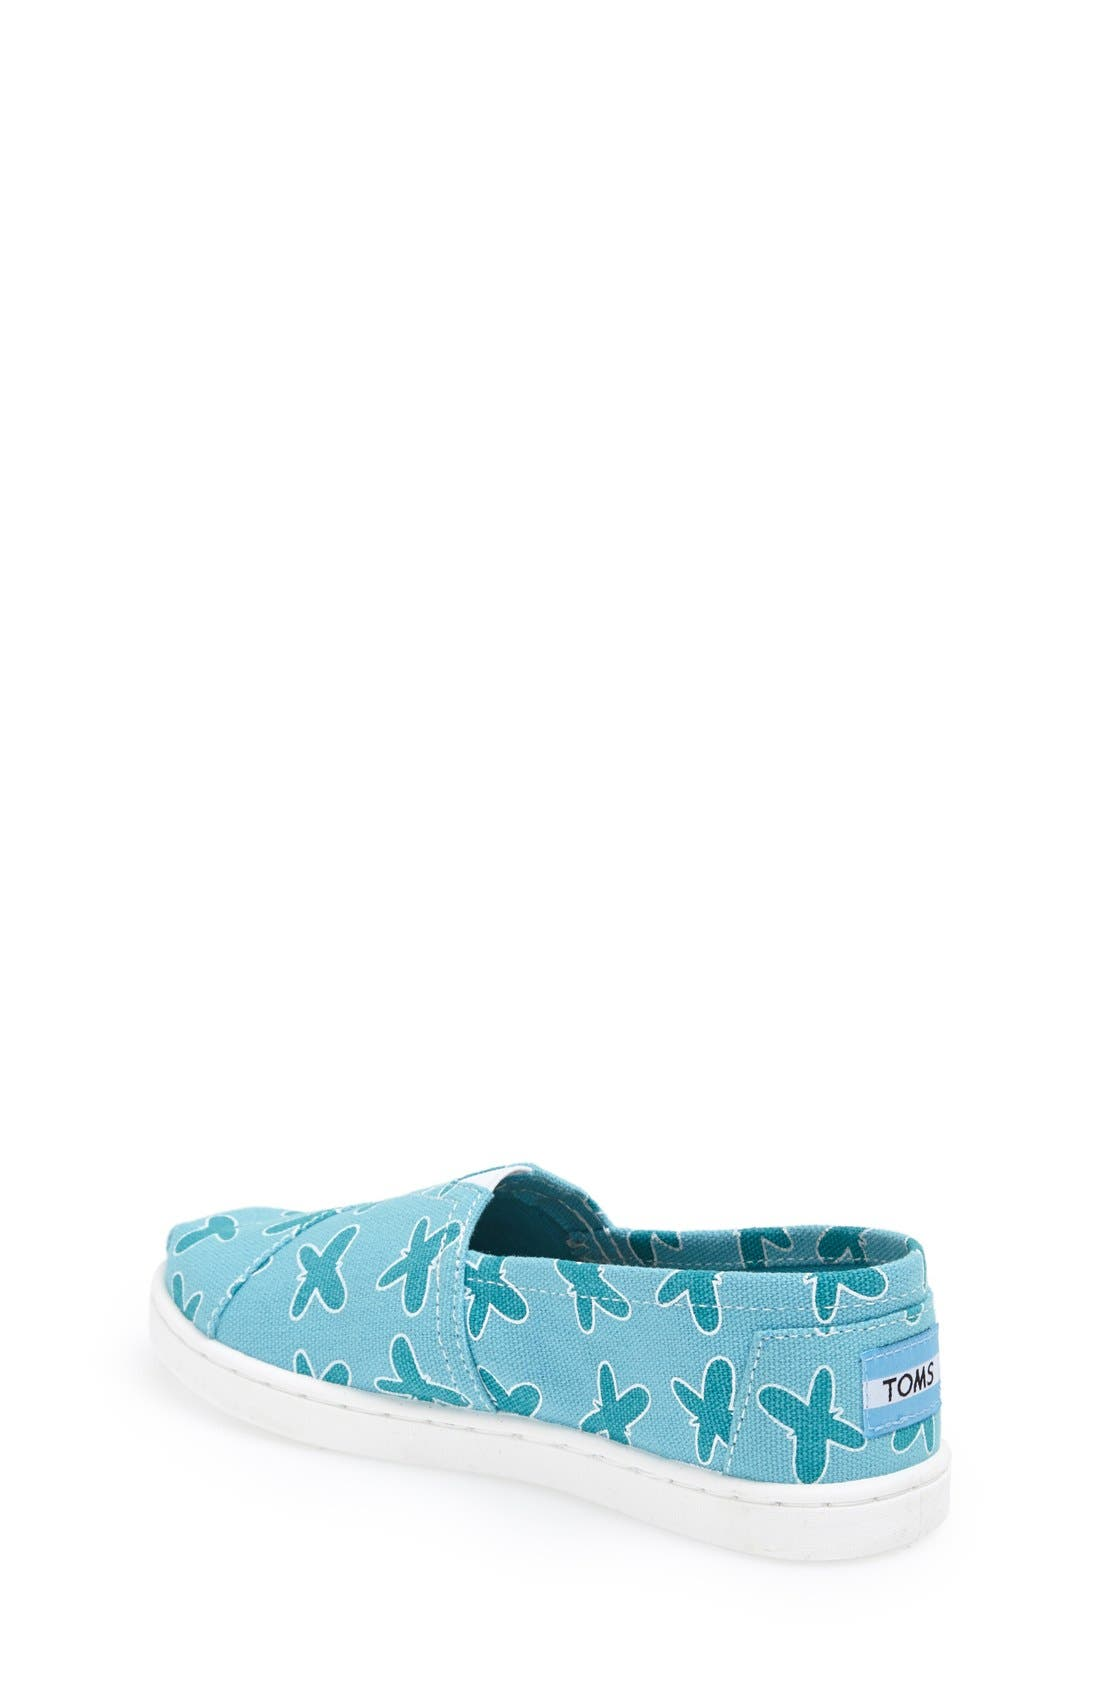 Alternate Image 2  - TOMS 'Classic Youth - Butterfly' Slip-On (Toddler, Little Kid & Big Kid)